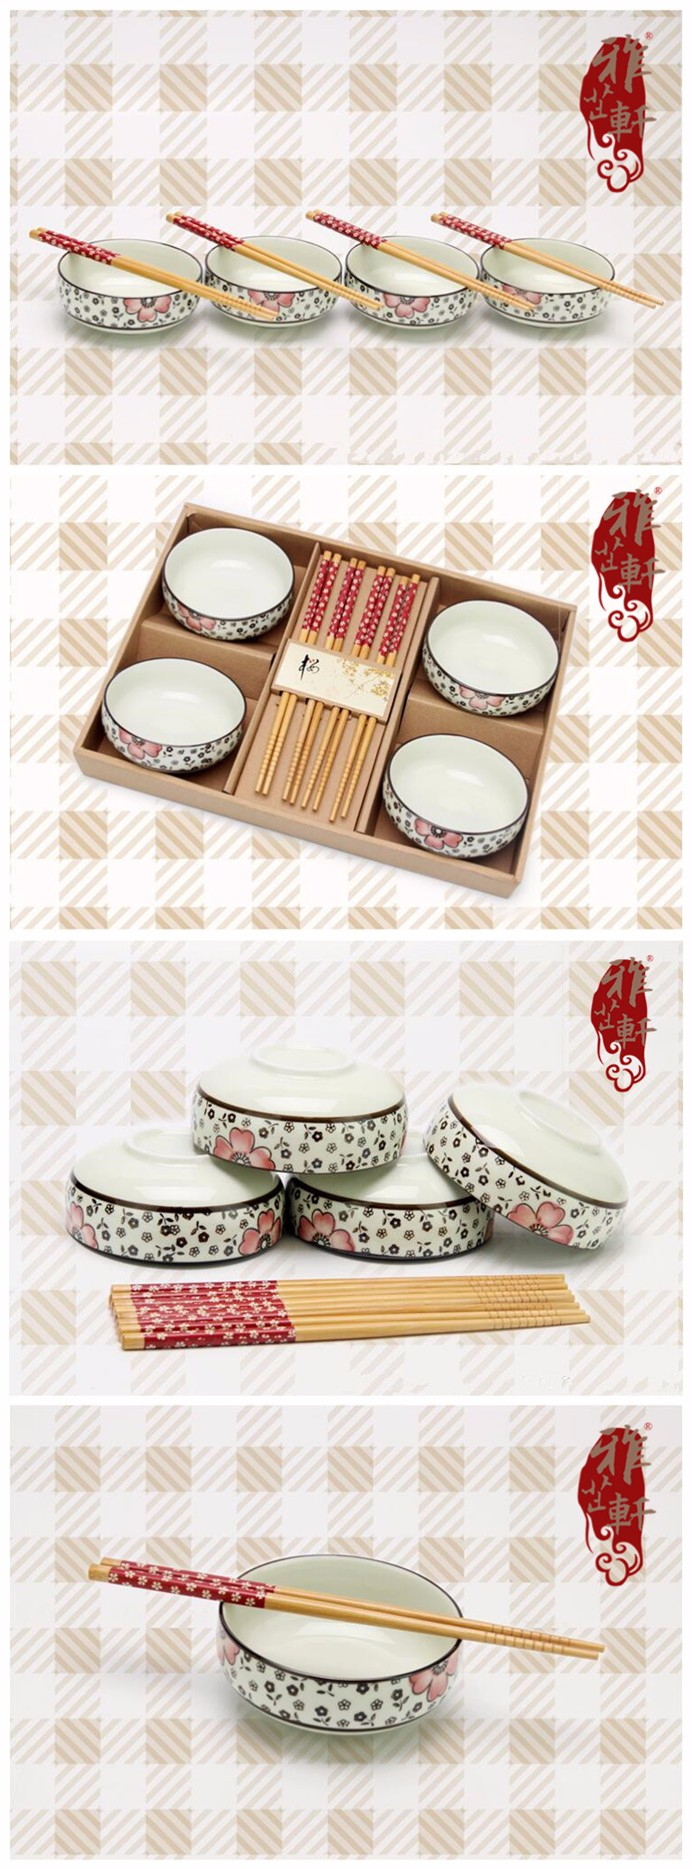 Top Quality Korean Style Tableware Chopsticks And Ceramic Bowls ...